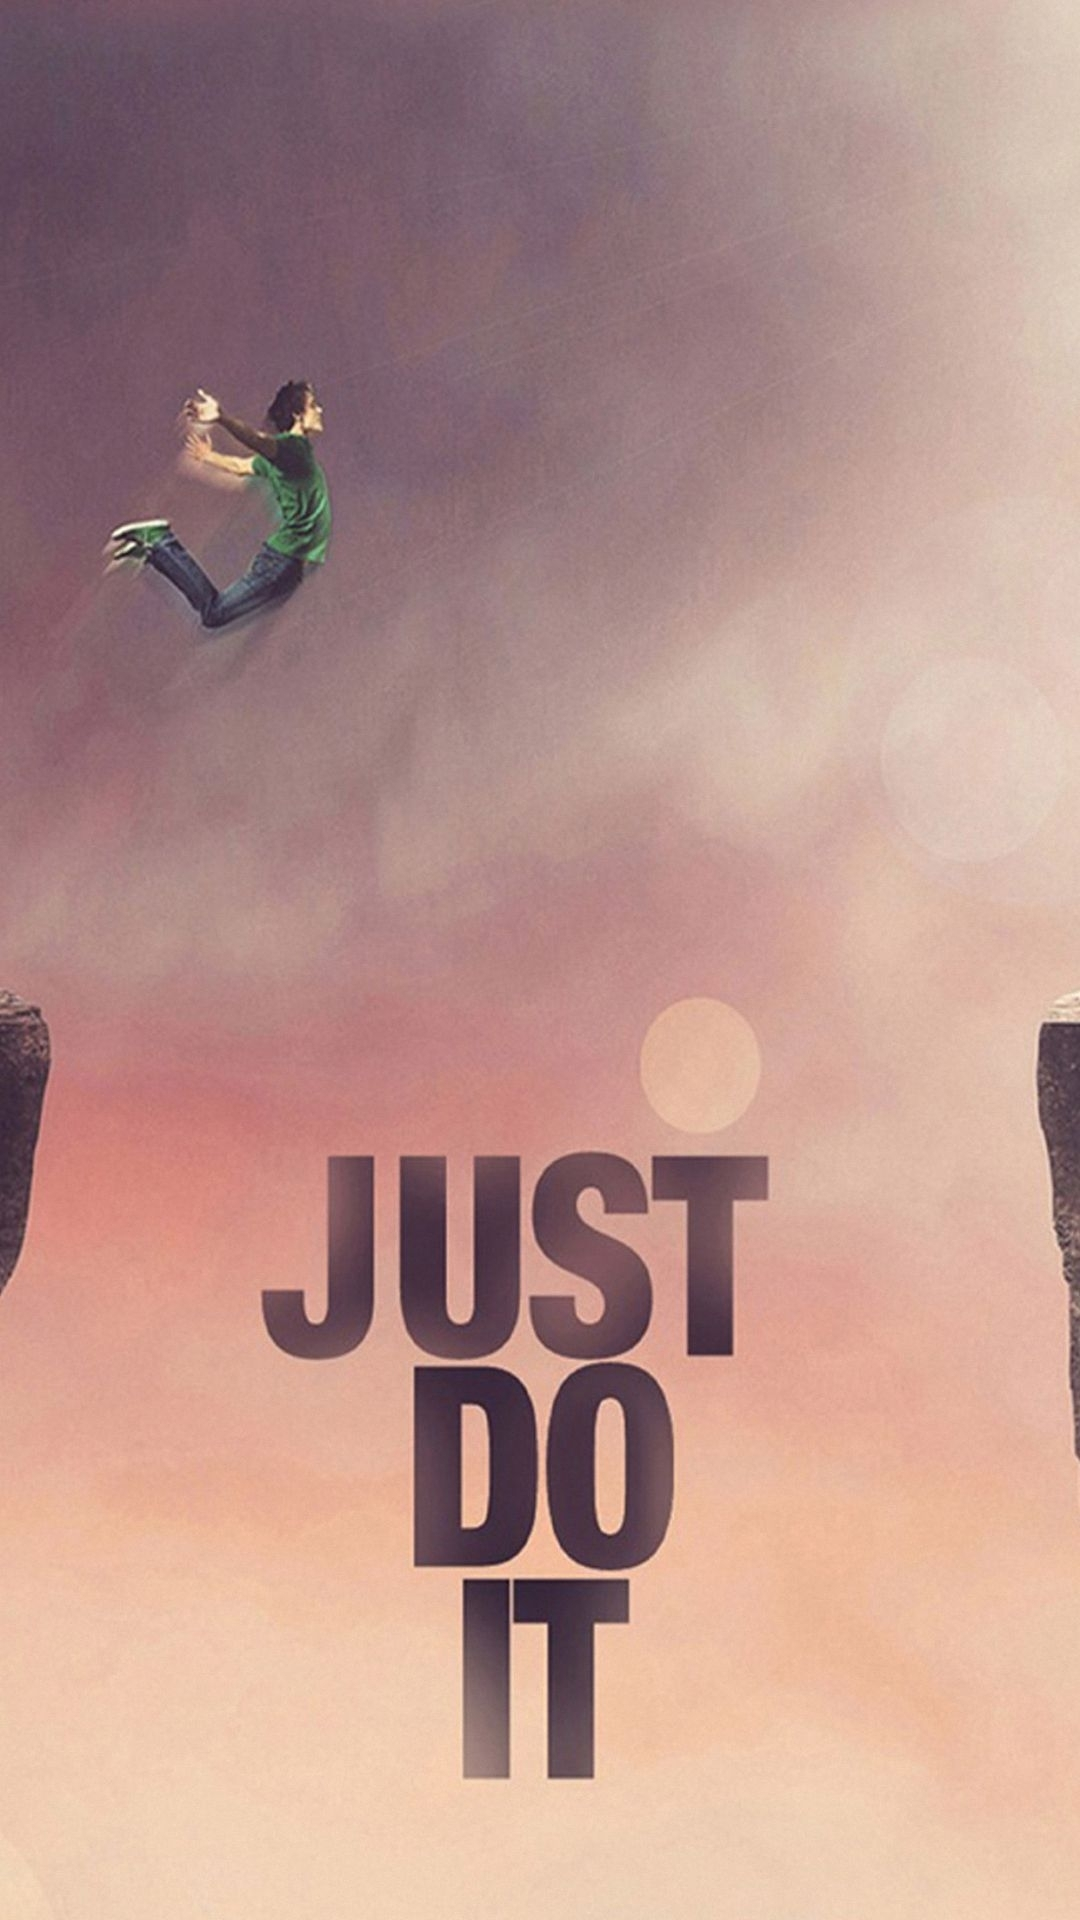 just do it iphone 6 wallpapers hd | iphone 6 wallpapers | pinterest